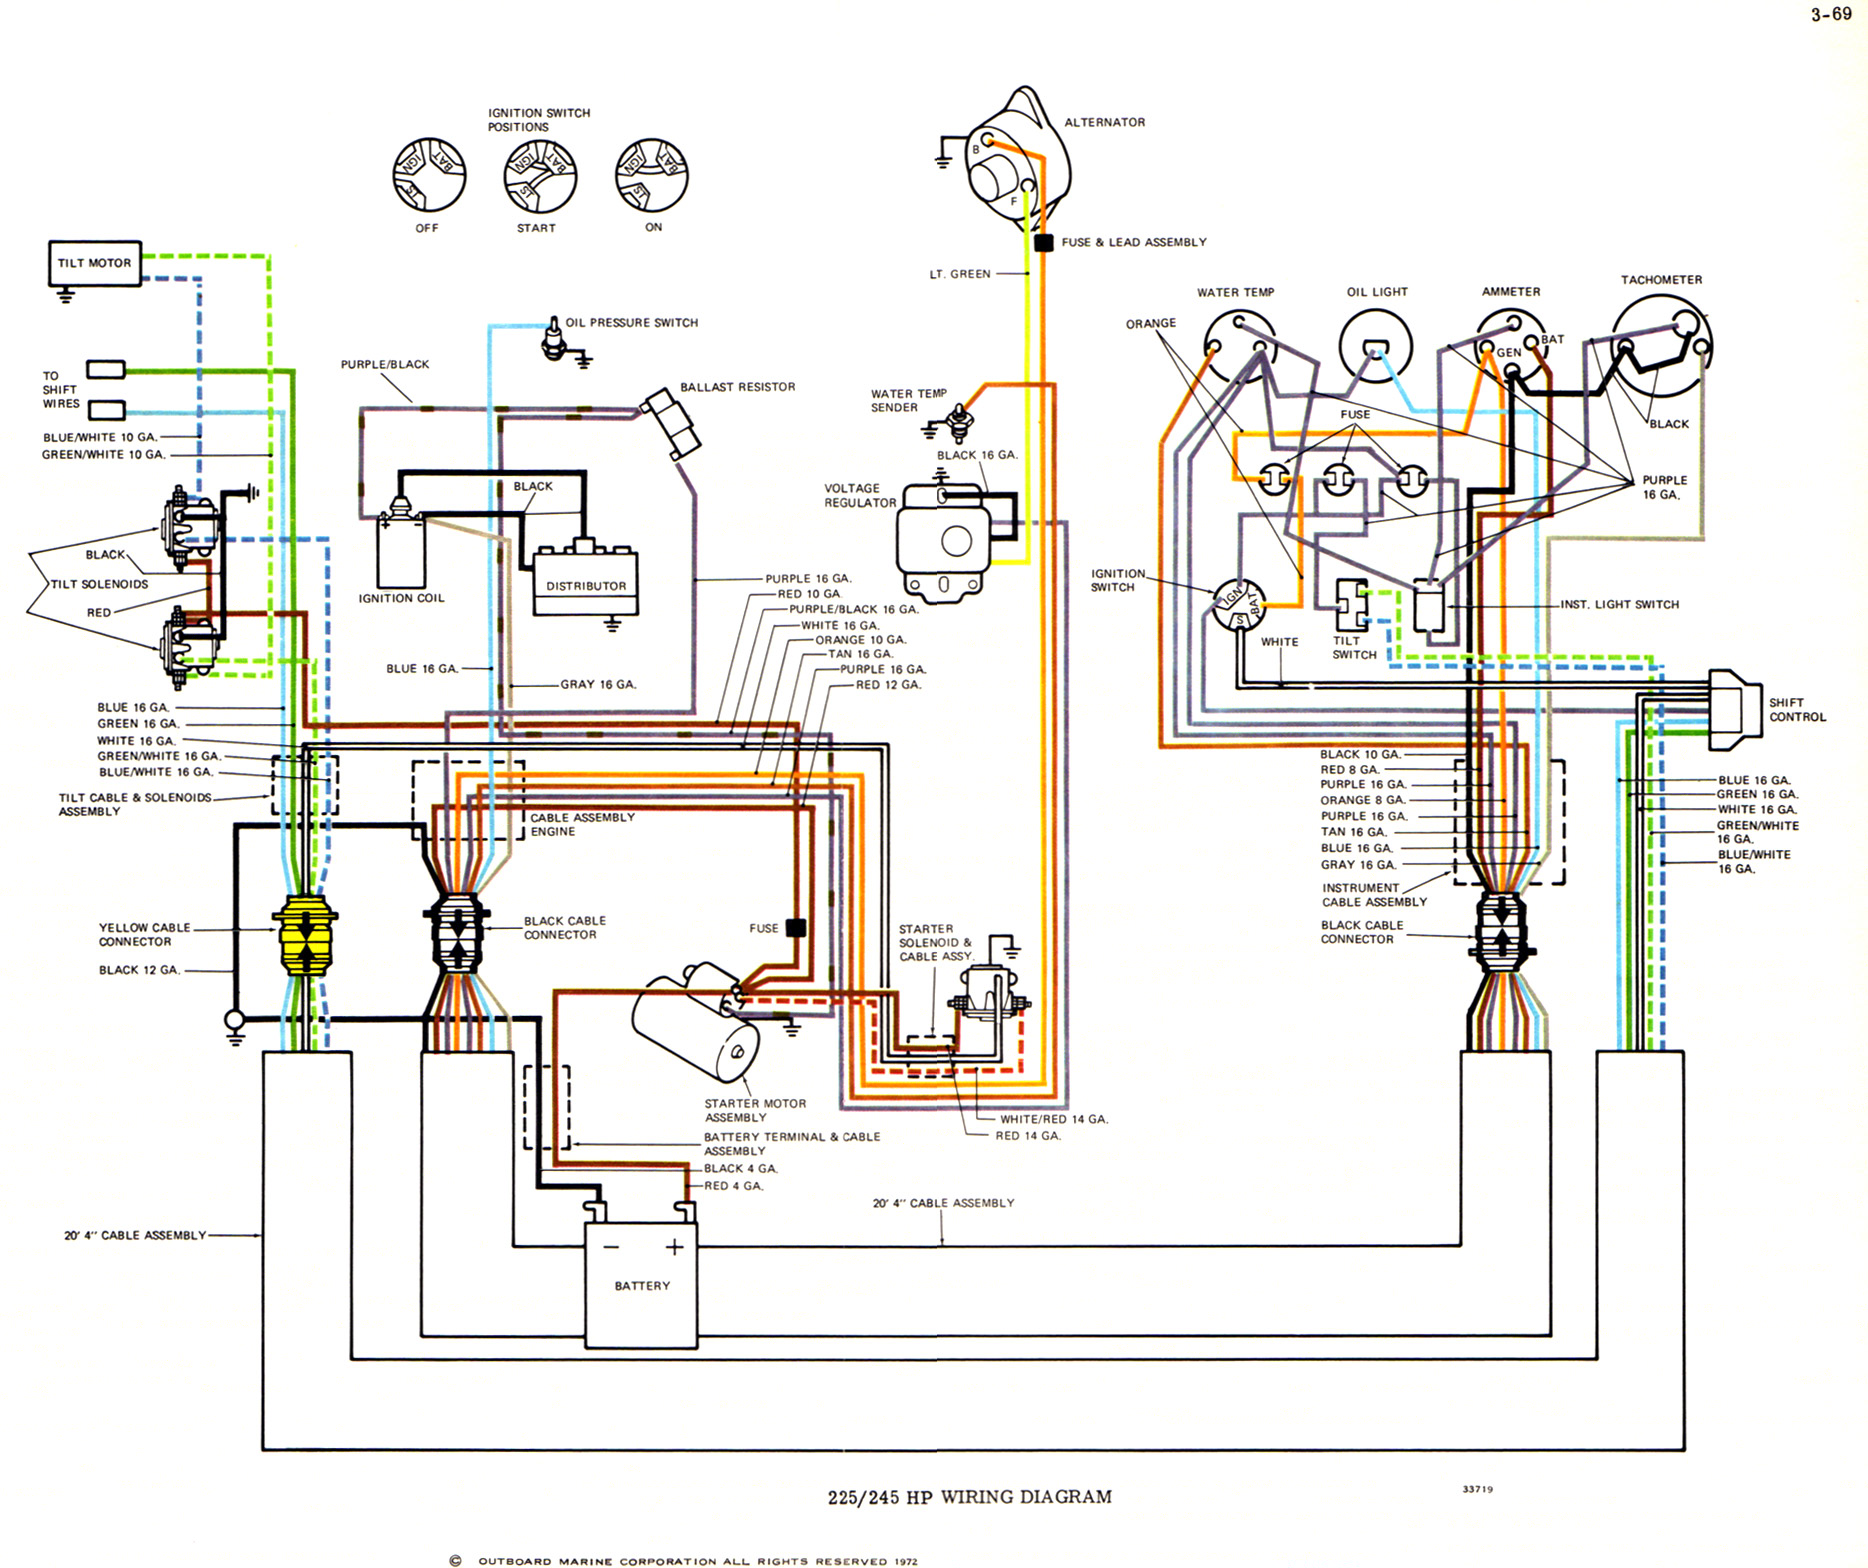 sea ray wiring schematic omc boat wiring diagram omc wiring diagrams online omc boat technical info